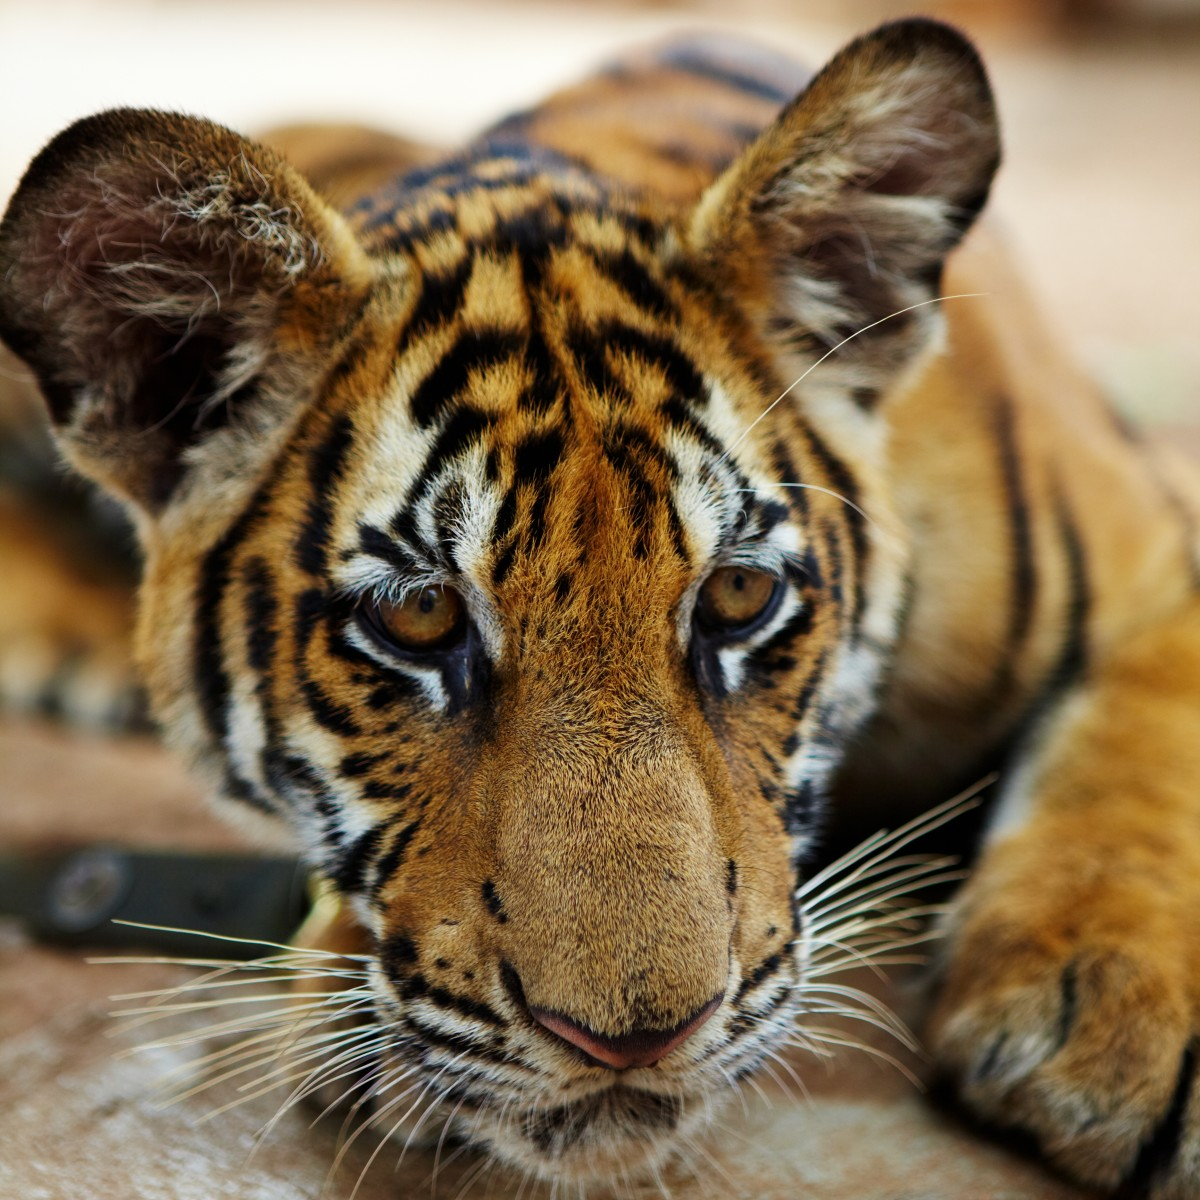 """Tiger cub at the controversial """"Tiger Temple"""" in Kanchanaburi province, Thailand"""